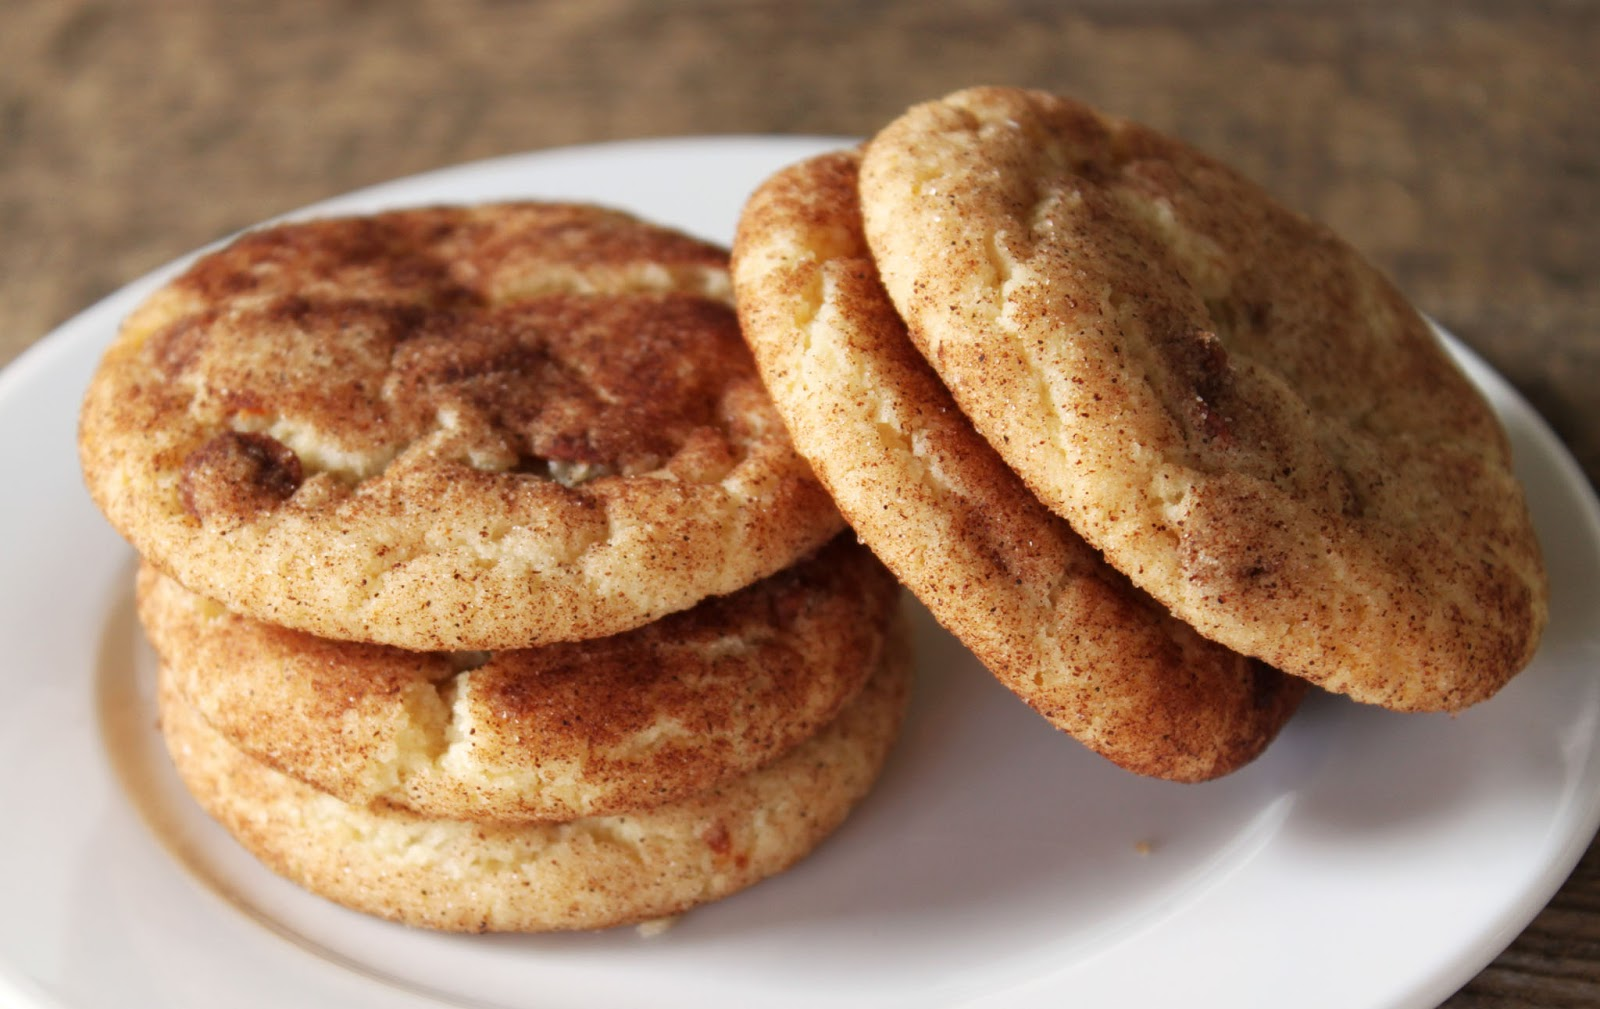 Mimi's Kitchen: Cinnamon Chip Snickerdoodles